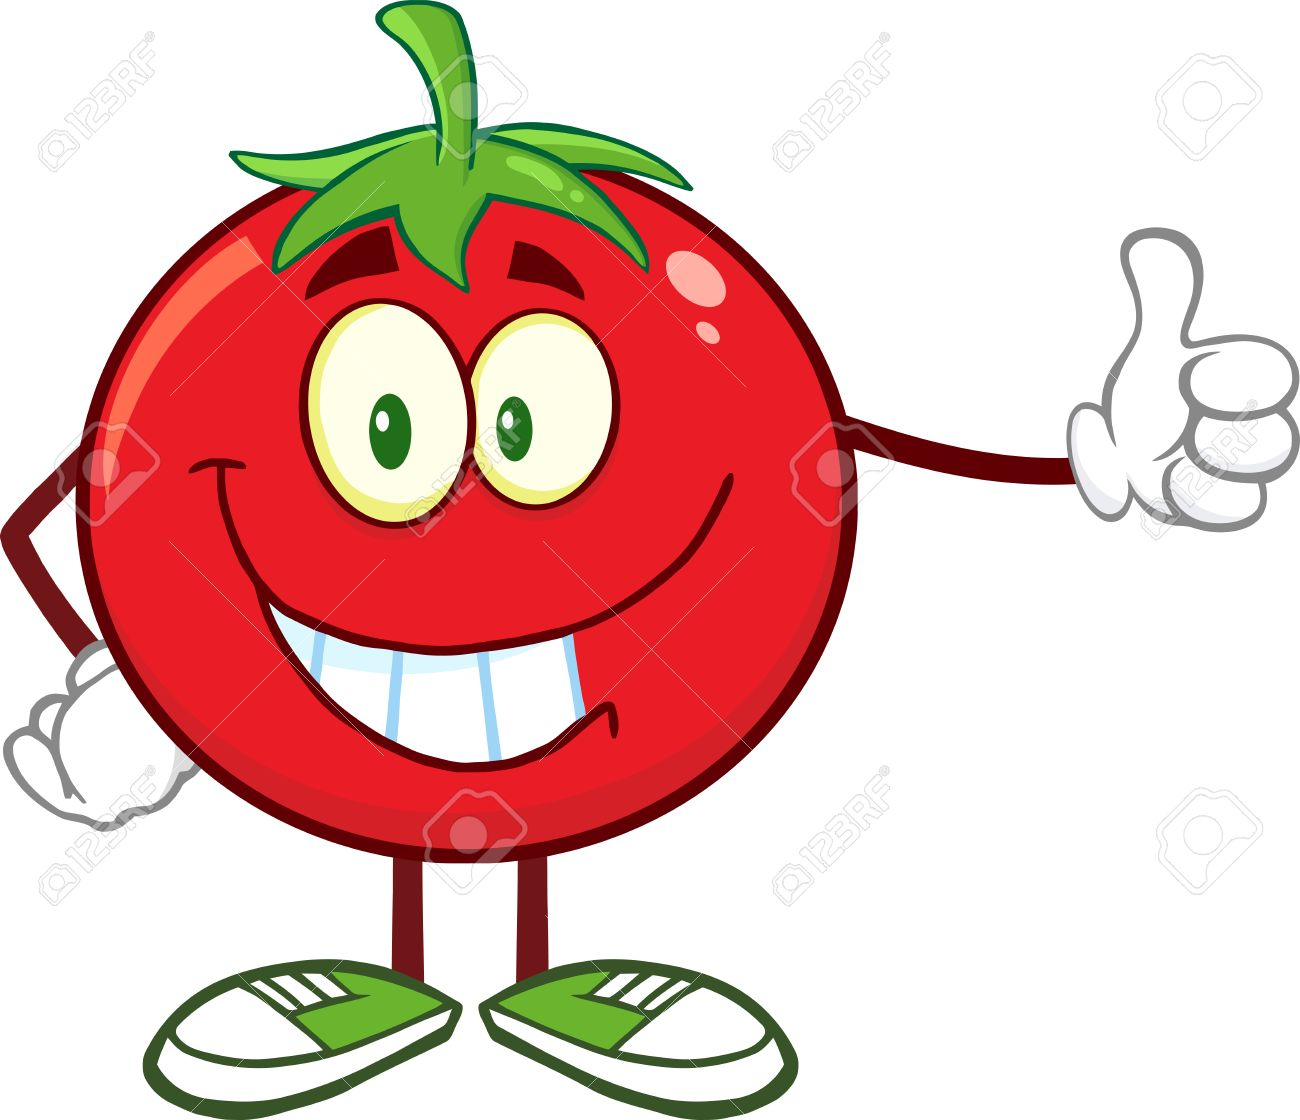 Smiling Tomato Cartoon Mascot Character Giving A Thumb Up. Illustration Isolated On White - 36453761